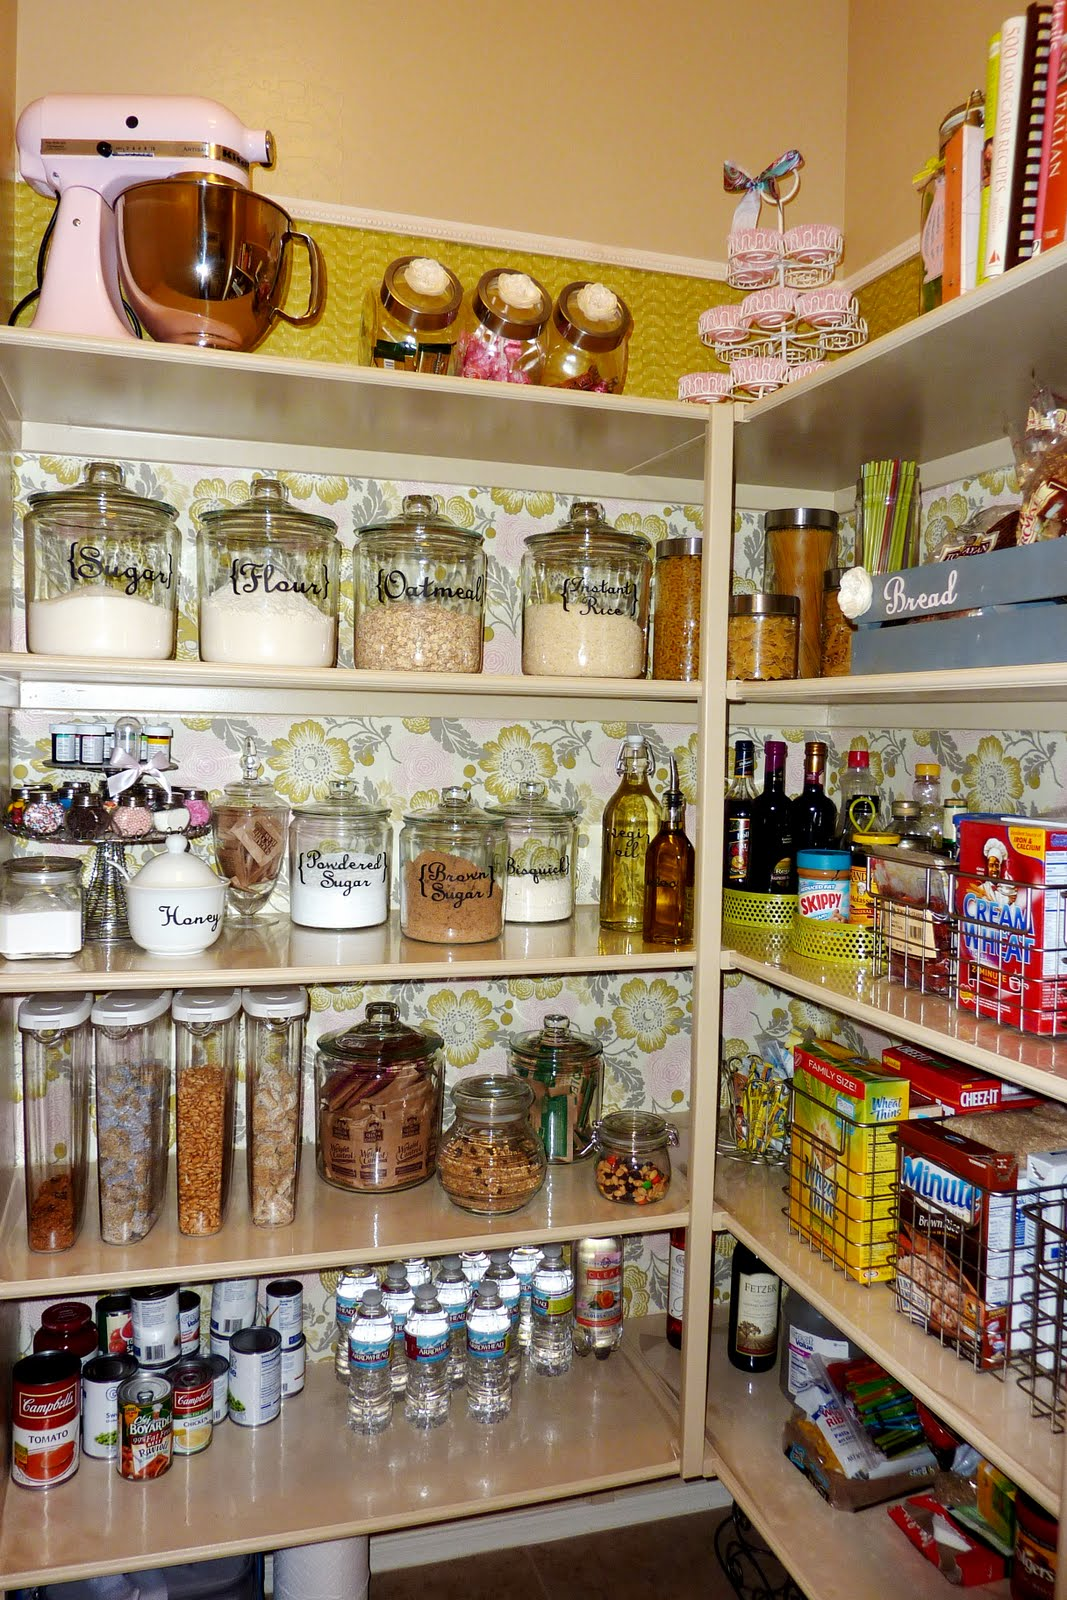 Chic White Kitchen Pantry Cabinet Design Idea with Glass Jars